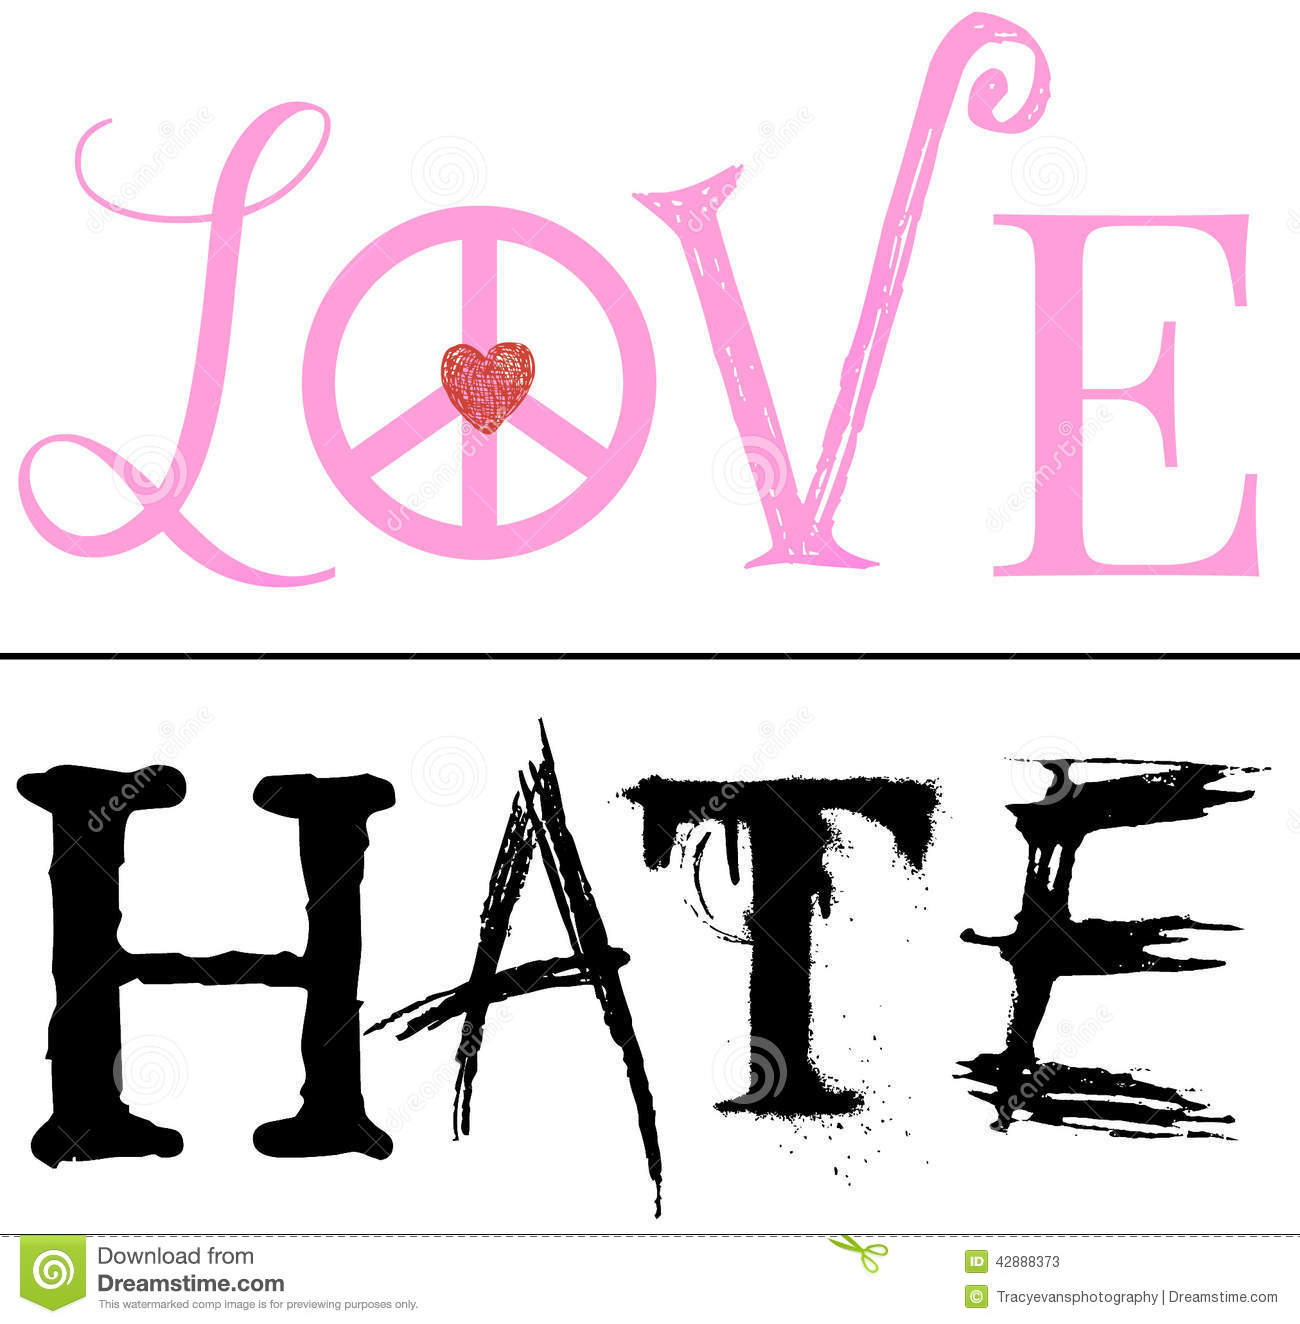 an analysis of theology of love or hate 1 teaching theology to kids is teaching scripture the charge to raise children in the knowledge and love of god is clearly given in the bible (deut 6:6-7 ps 78:1-8), and teaching theology is one of the ways to fulfill that charge.